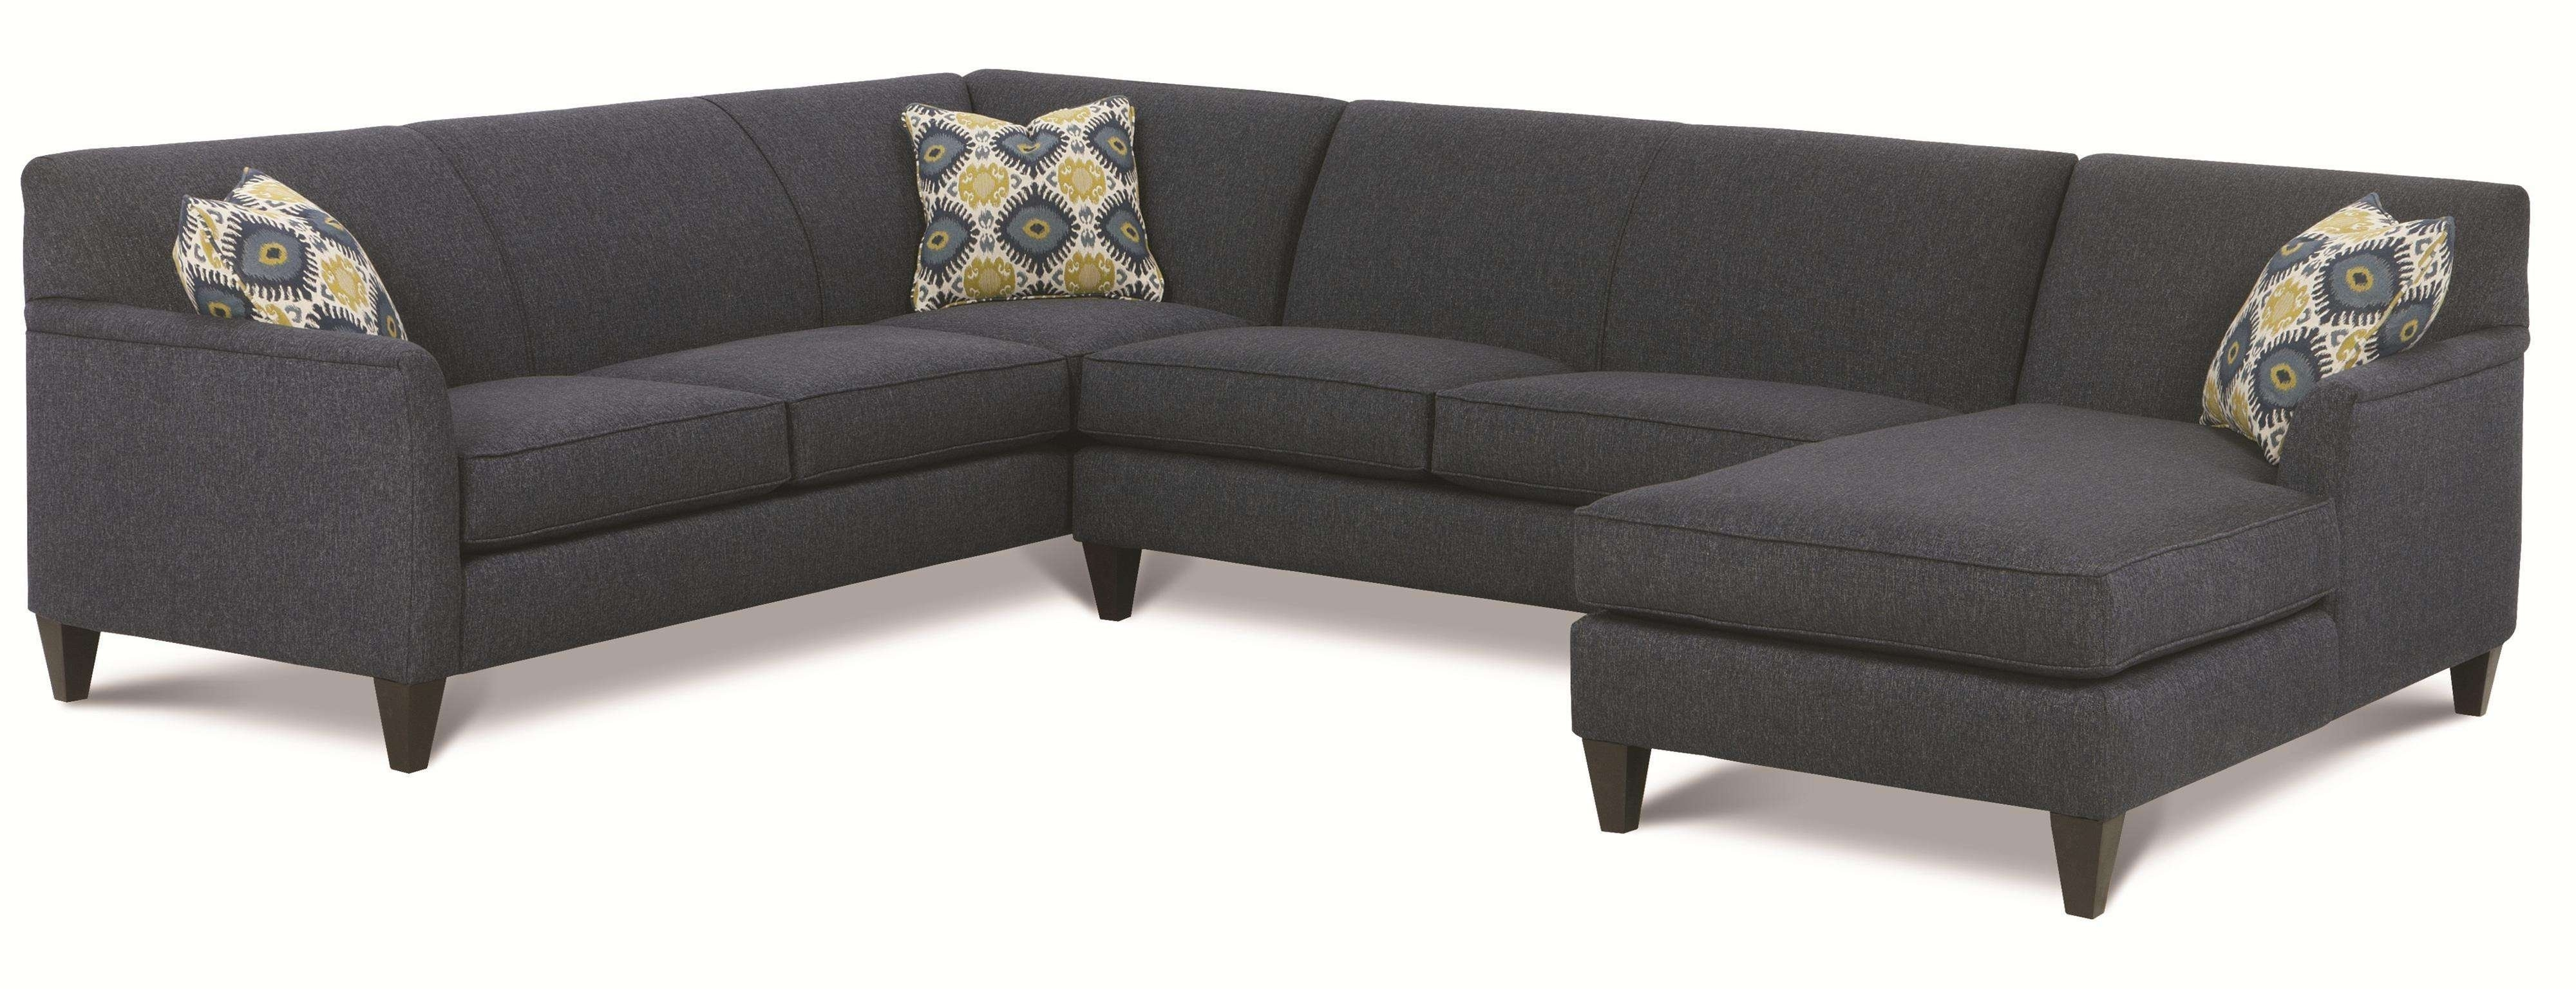 Simple 25 2 Piece Sectionals With Chaise Awesome | Russiandesignshow pertaining to Aquarius Dark Grey 2 Piece Sectionals With Raf Chaise (Image 26 of 30)